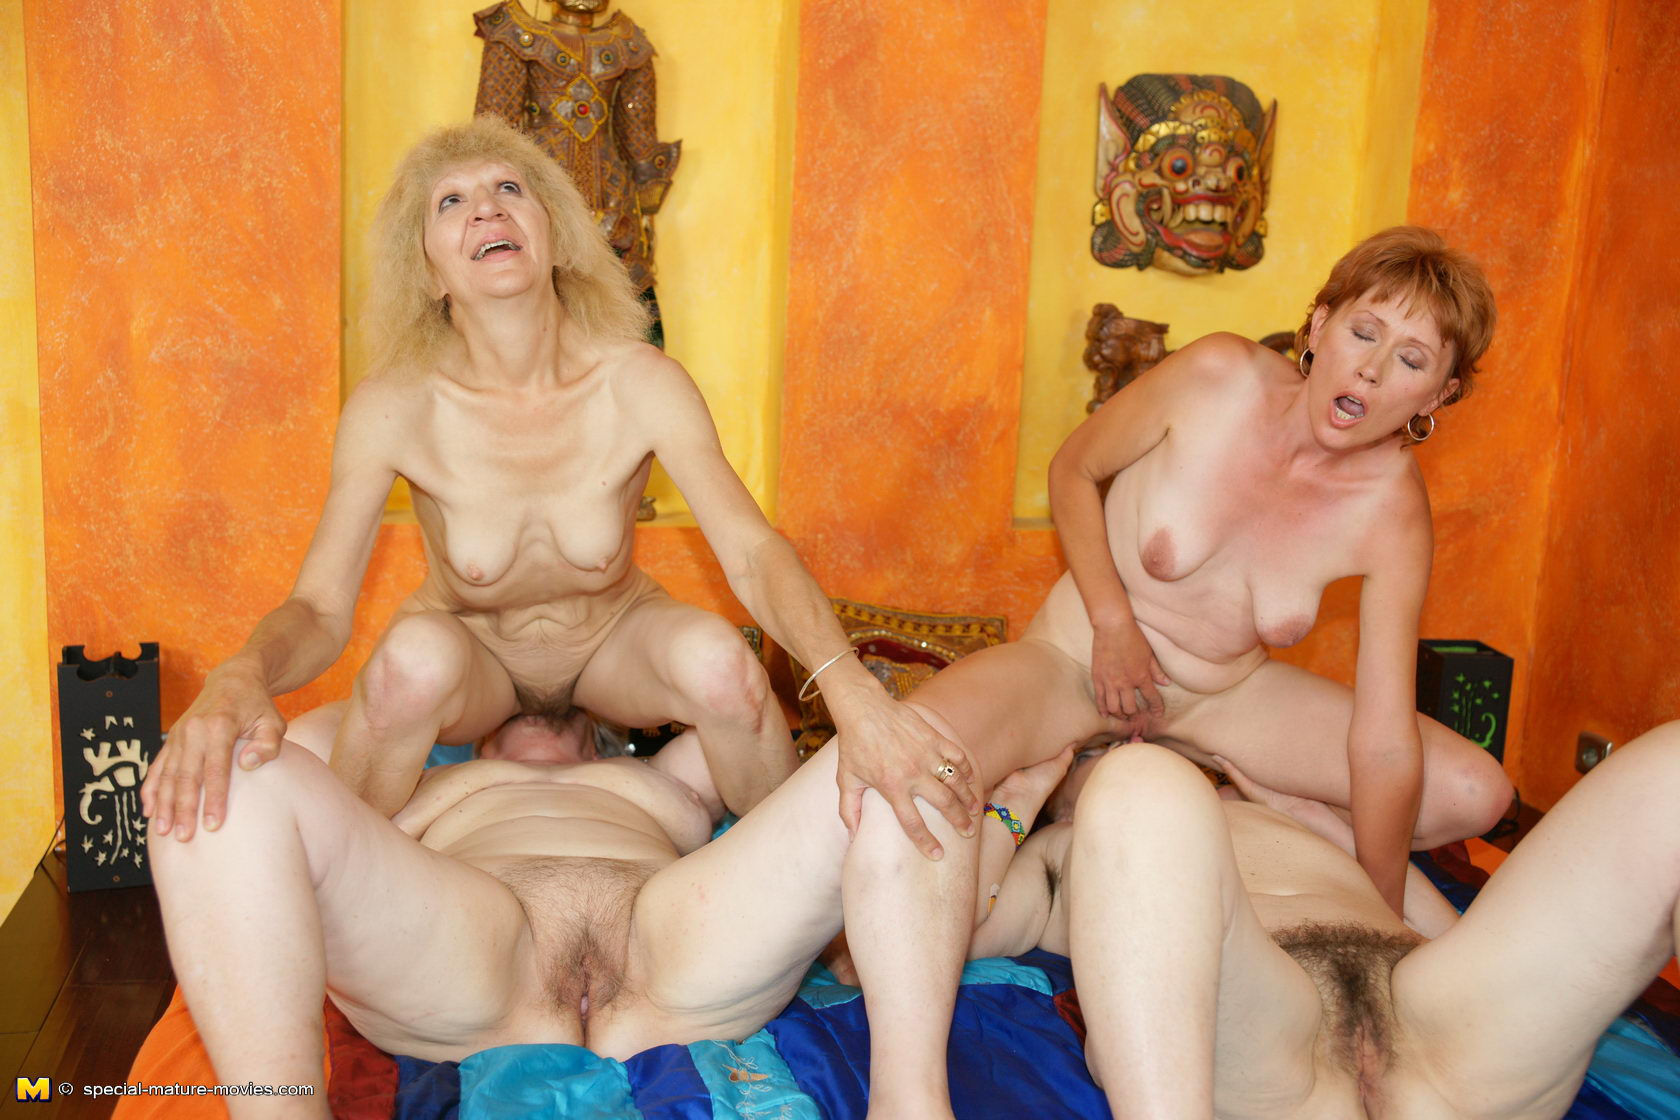 Nude mature lesbian group sex party